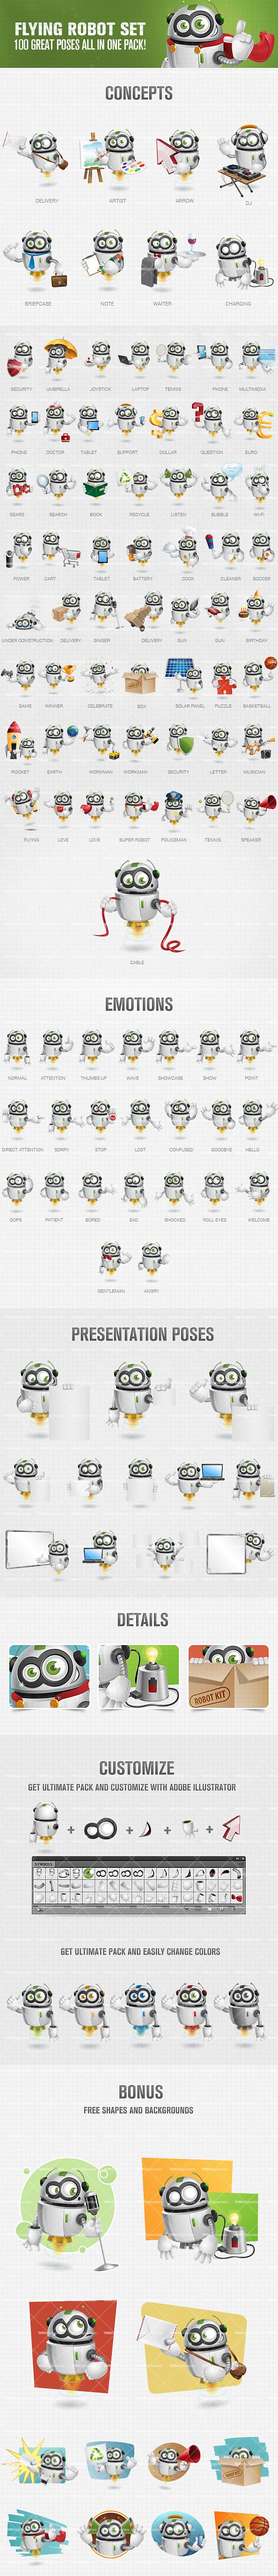 Flying robot cartoon character designed in fun and friendly style. We've made 100 poses which could really add welcome atmosphere to your designs. Get our robot character and use it on your web and print projects. Continue reading →